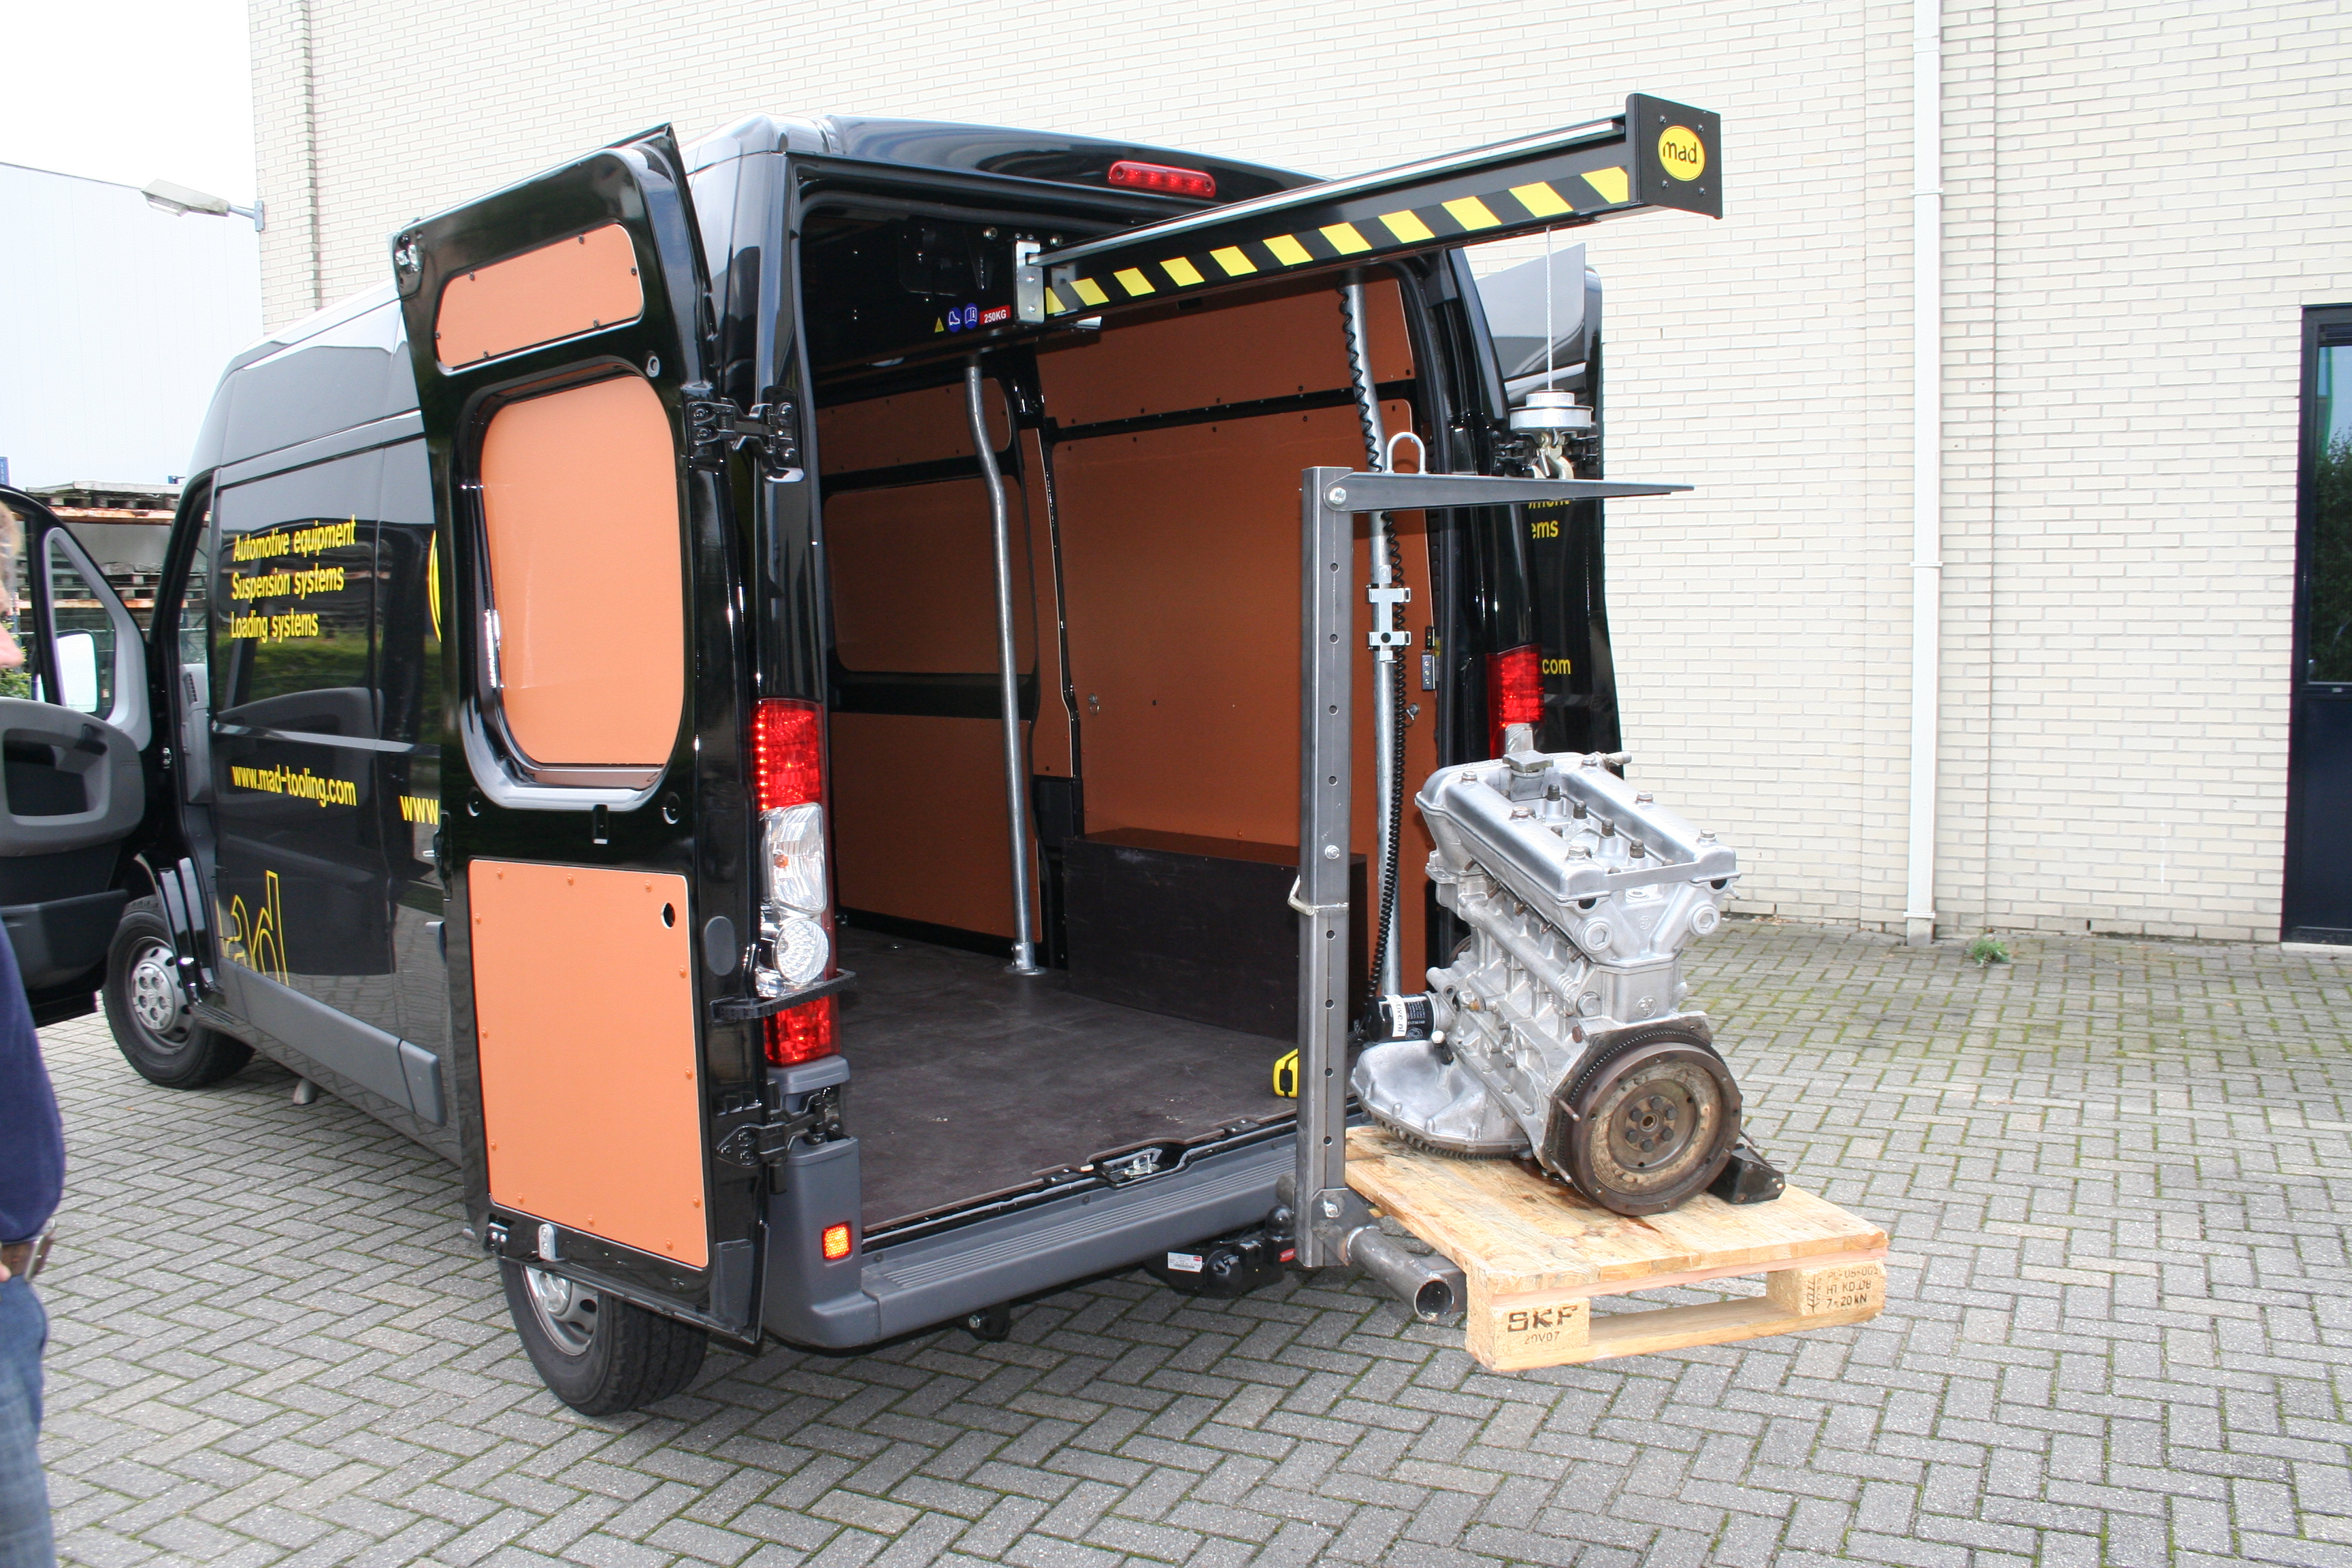 MAD EasyLoad Van Crane is the ideal solution for handling, lifting and loading pallets into a van